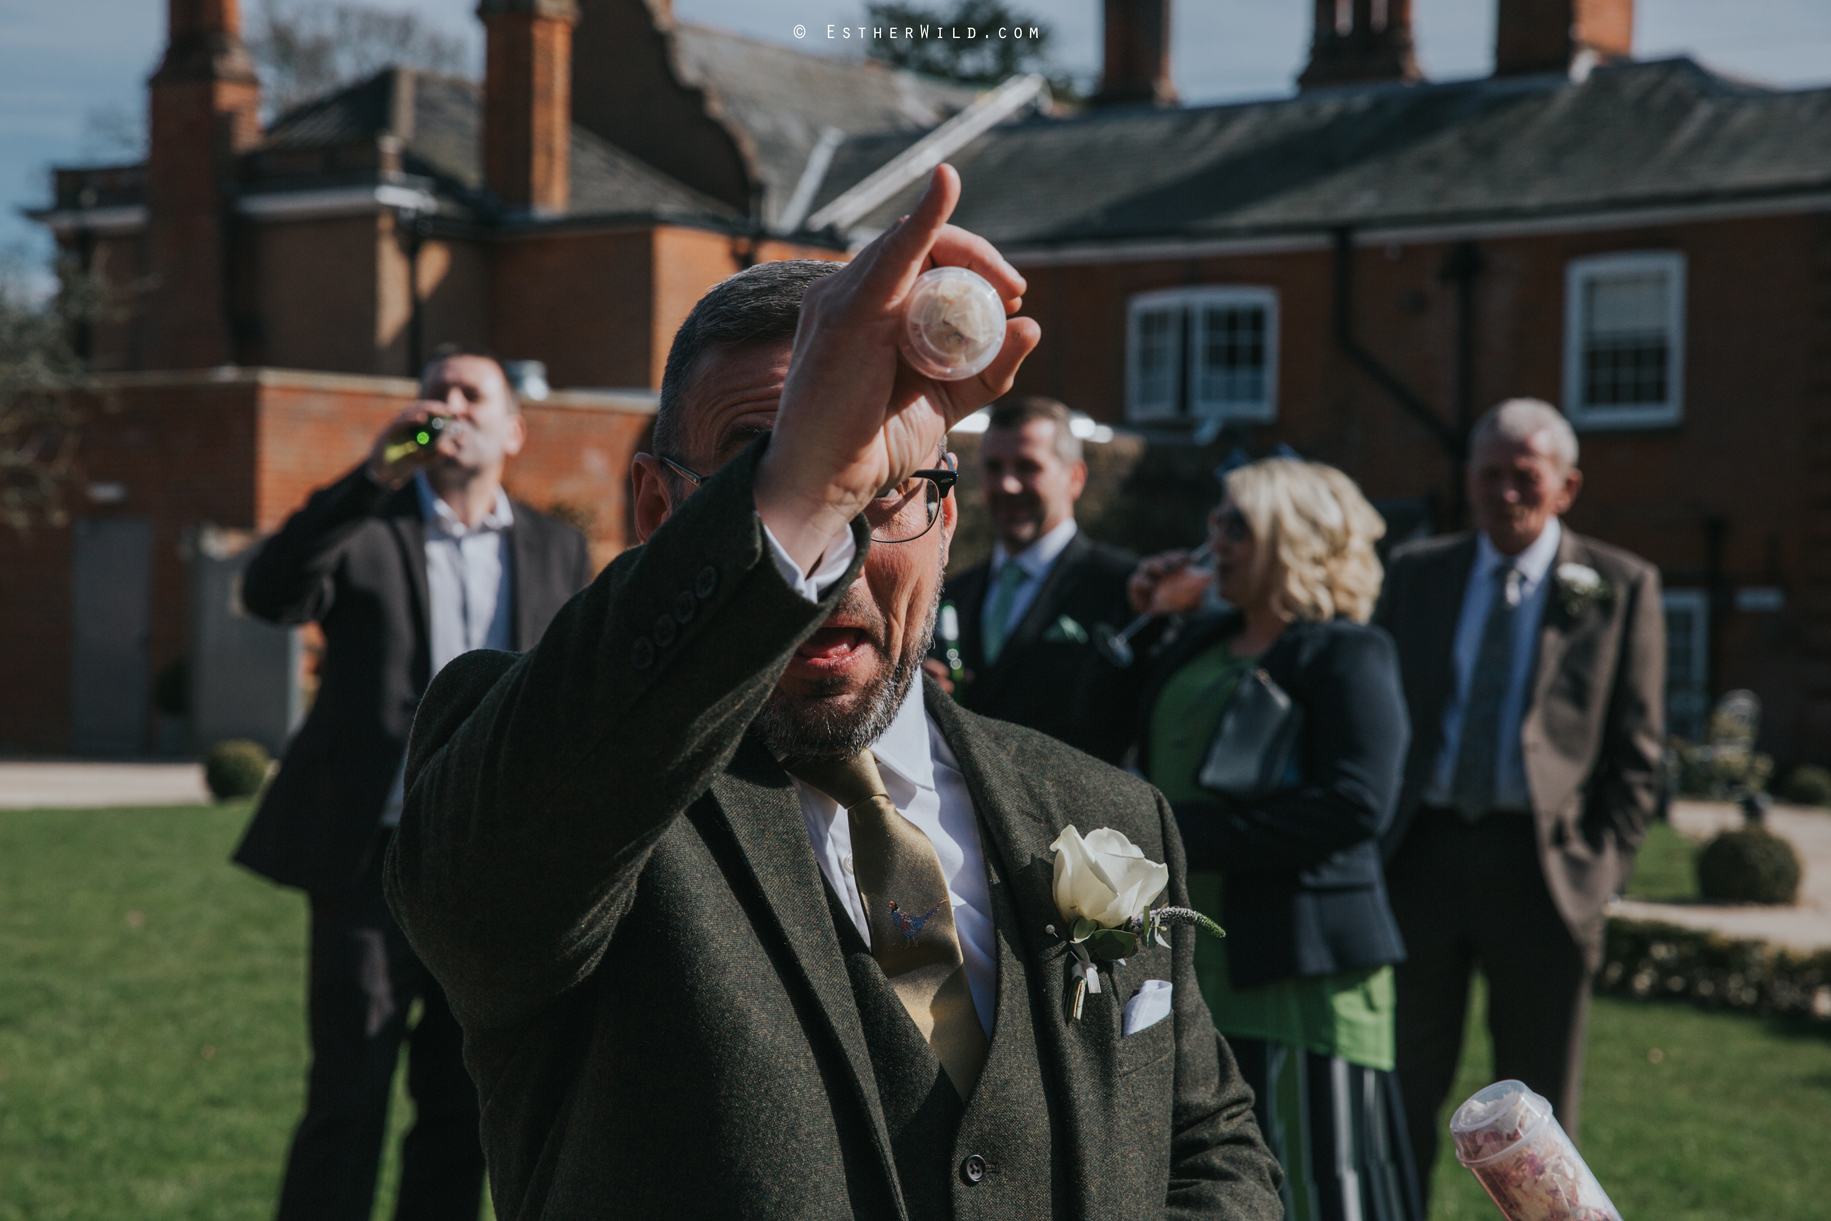 Norfolk_Mead_Hotel_Norwich_Wedding_Copyright_Esther_Wild_Photographer_IMG_1557.jpg